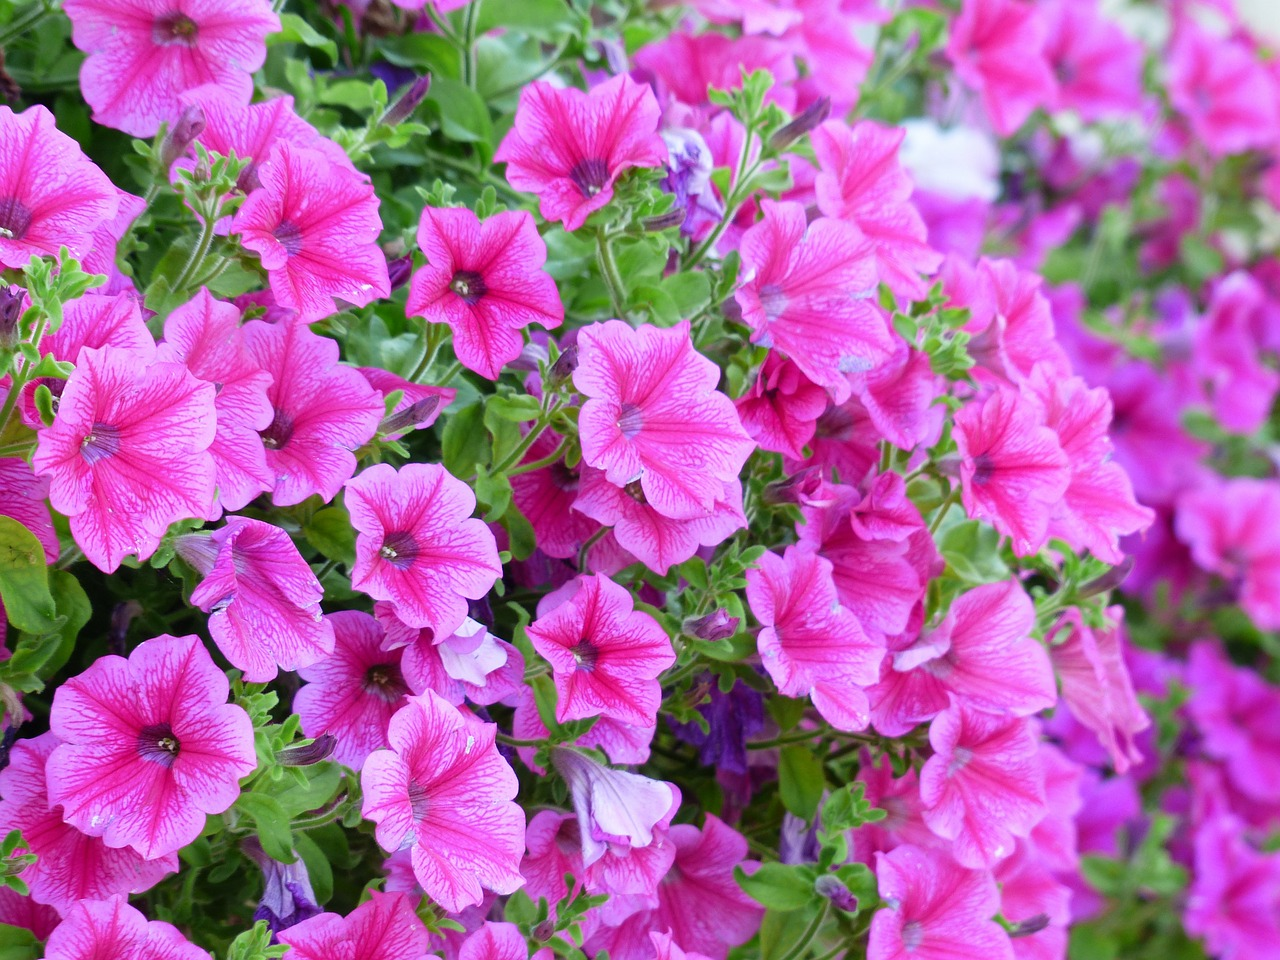 petunia flower blossom free photo